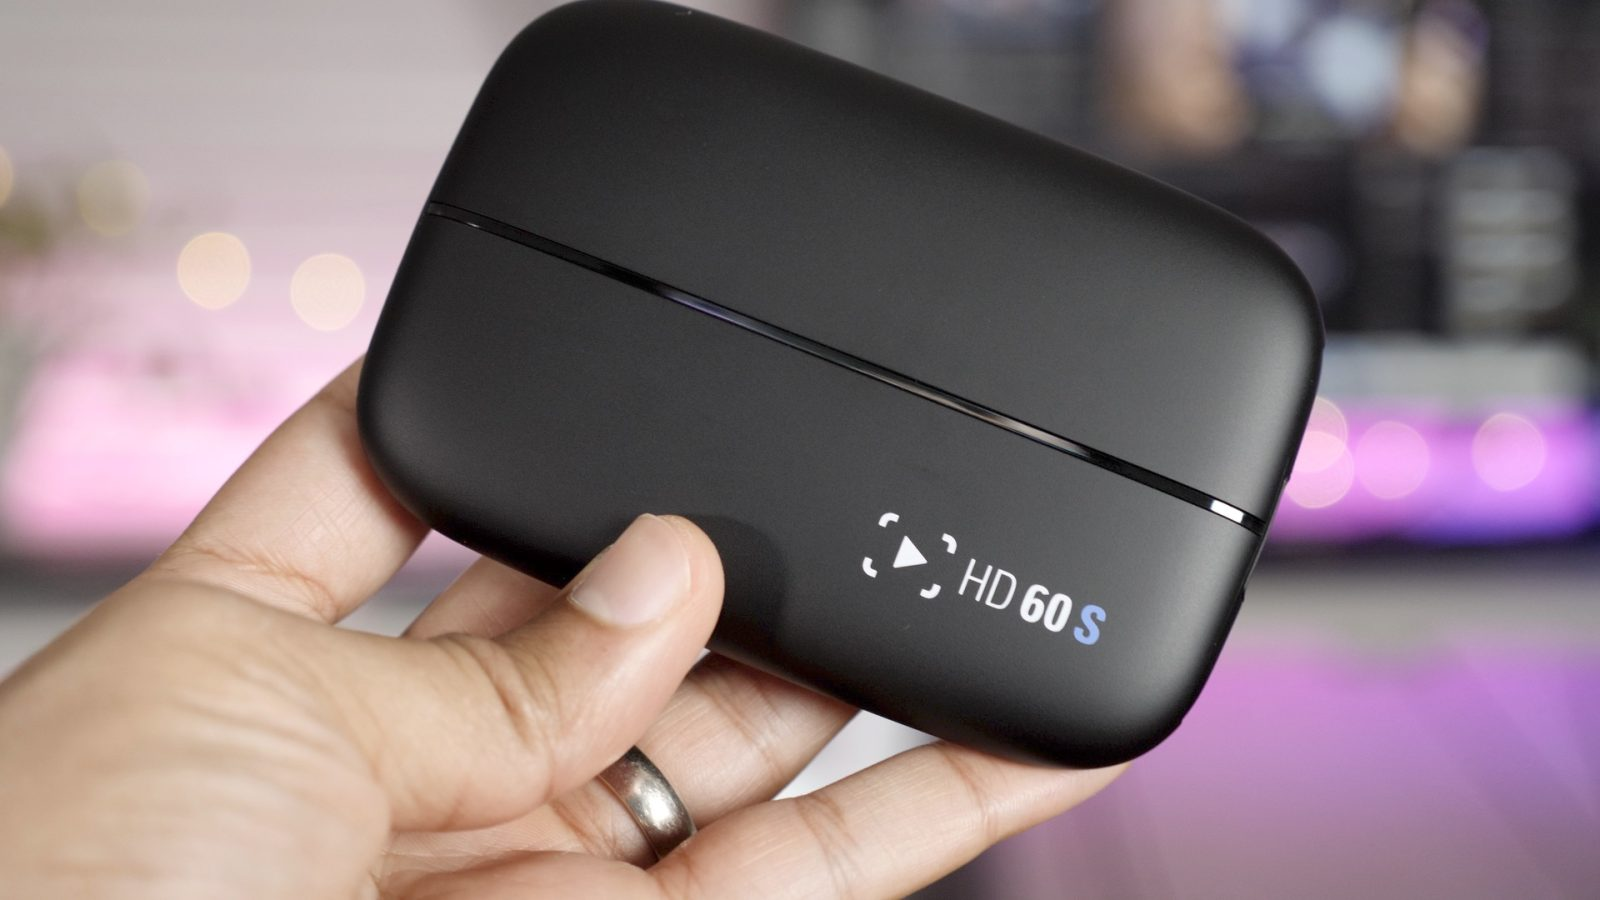 Hands-on: Elgato HD60 S - a solid video capture and live